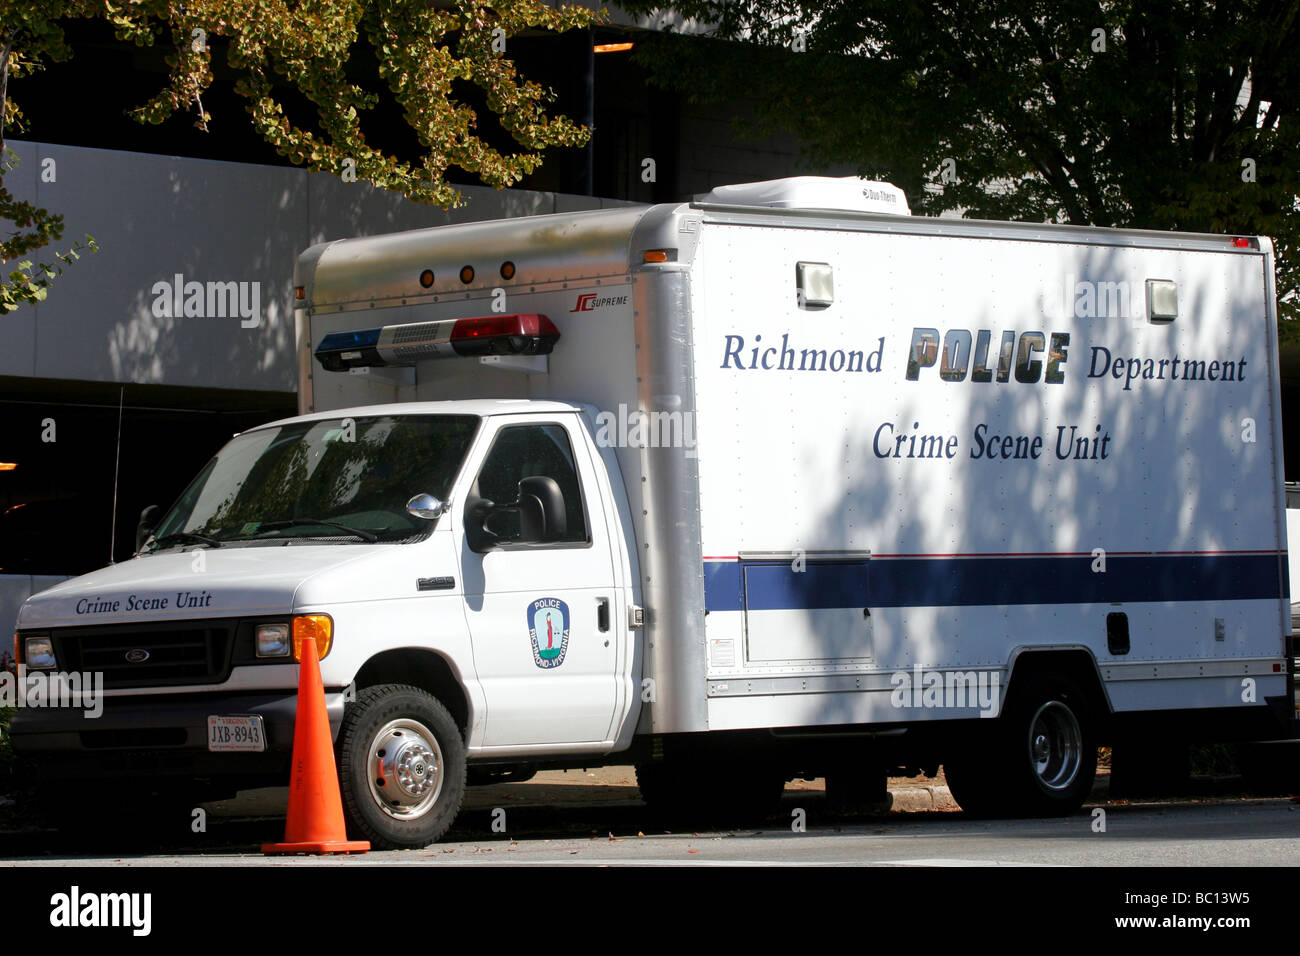 Richmond police forensics truck - Stock Image